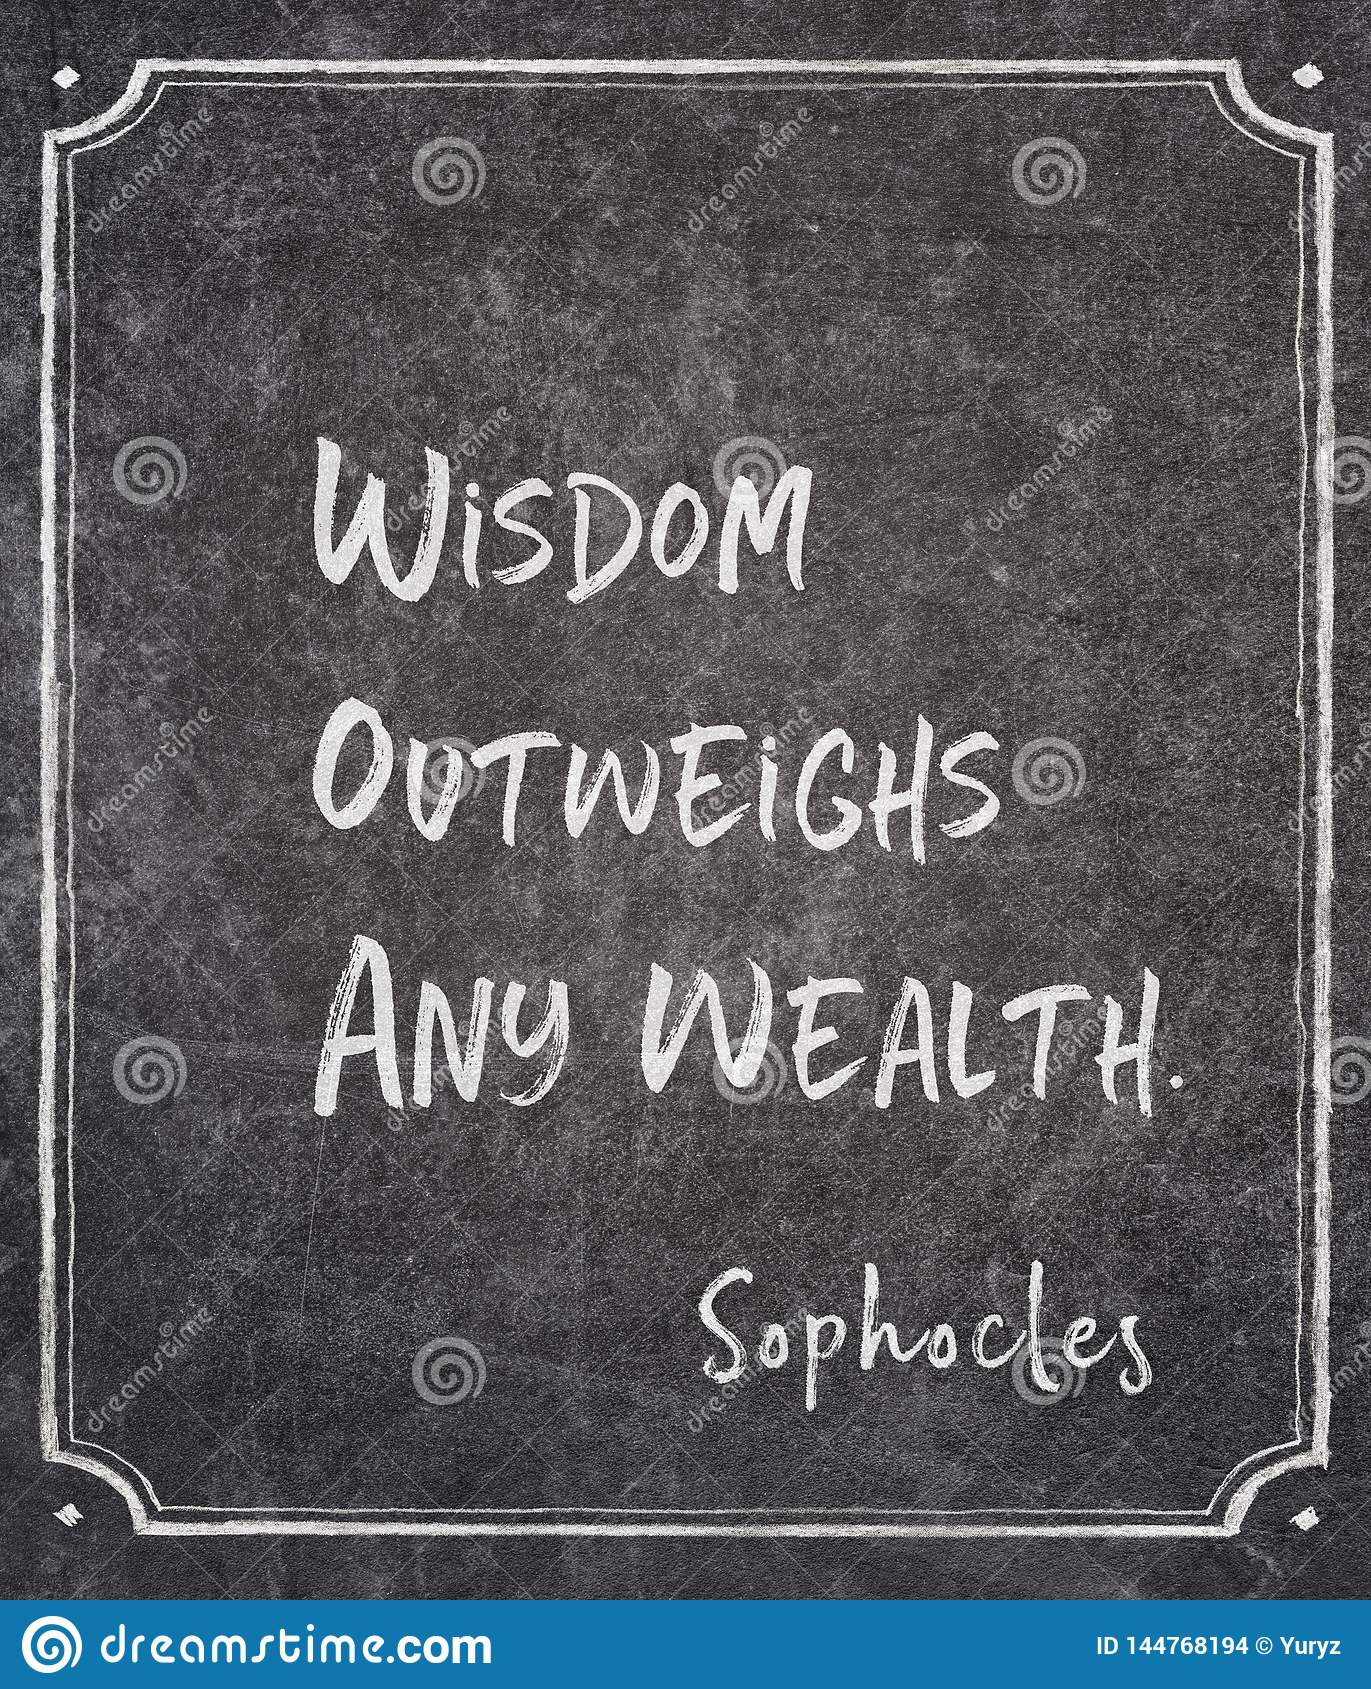 Any wealth Sophocles quote